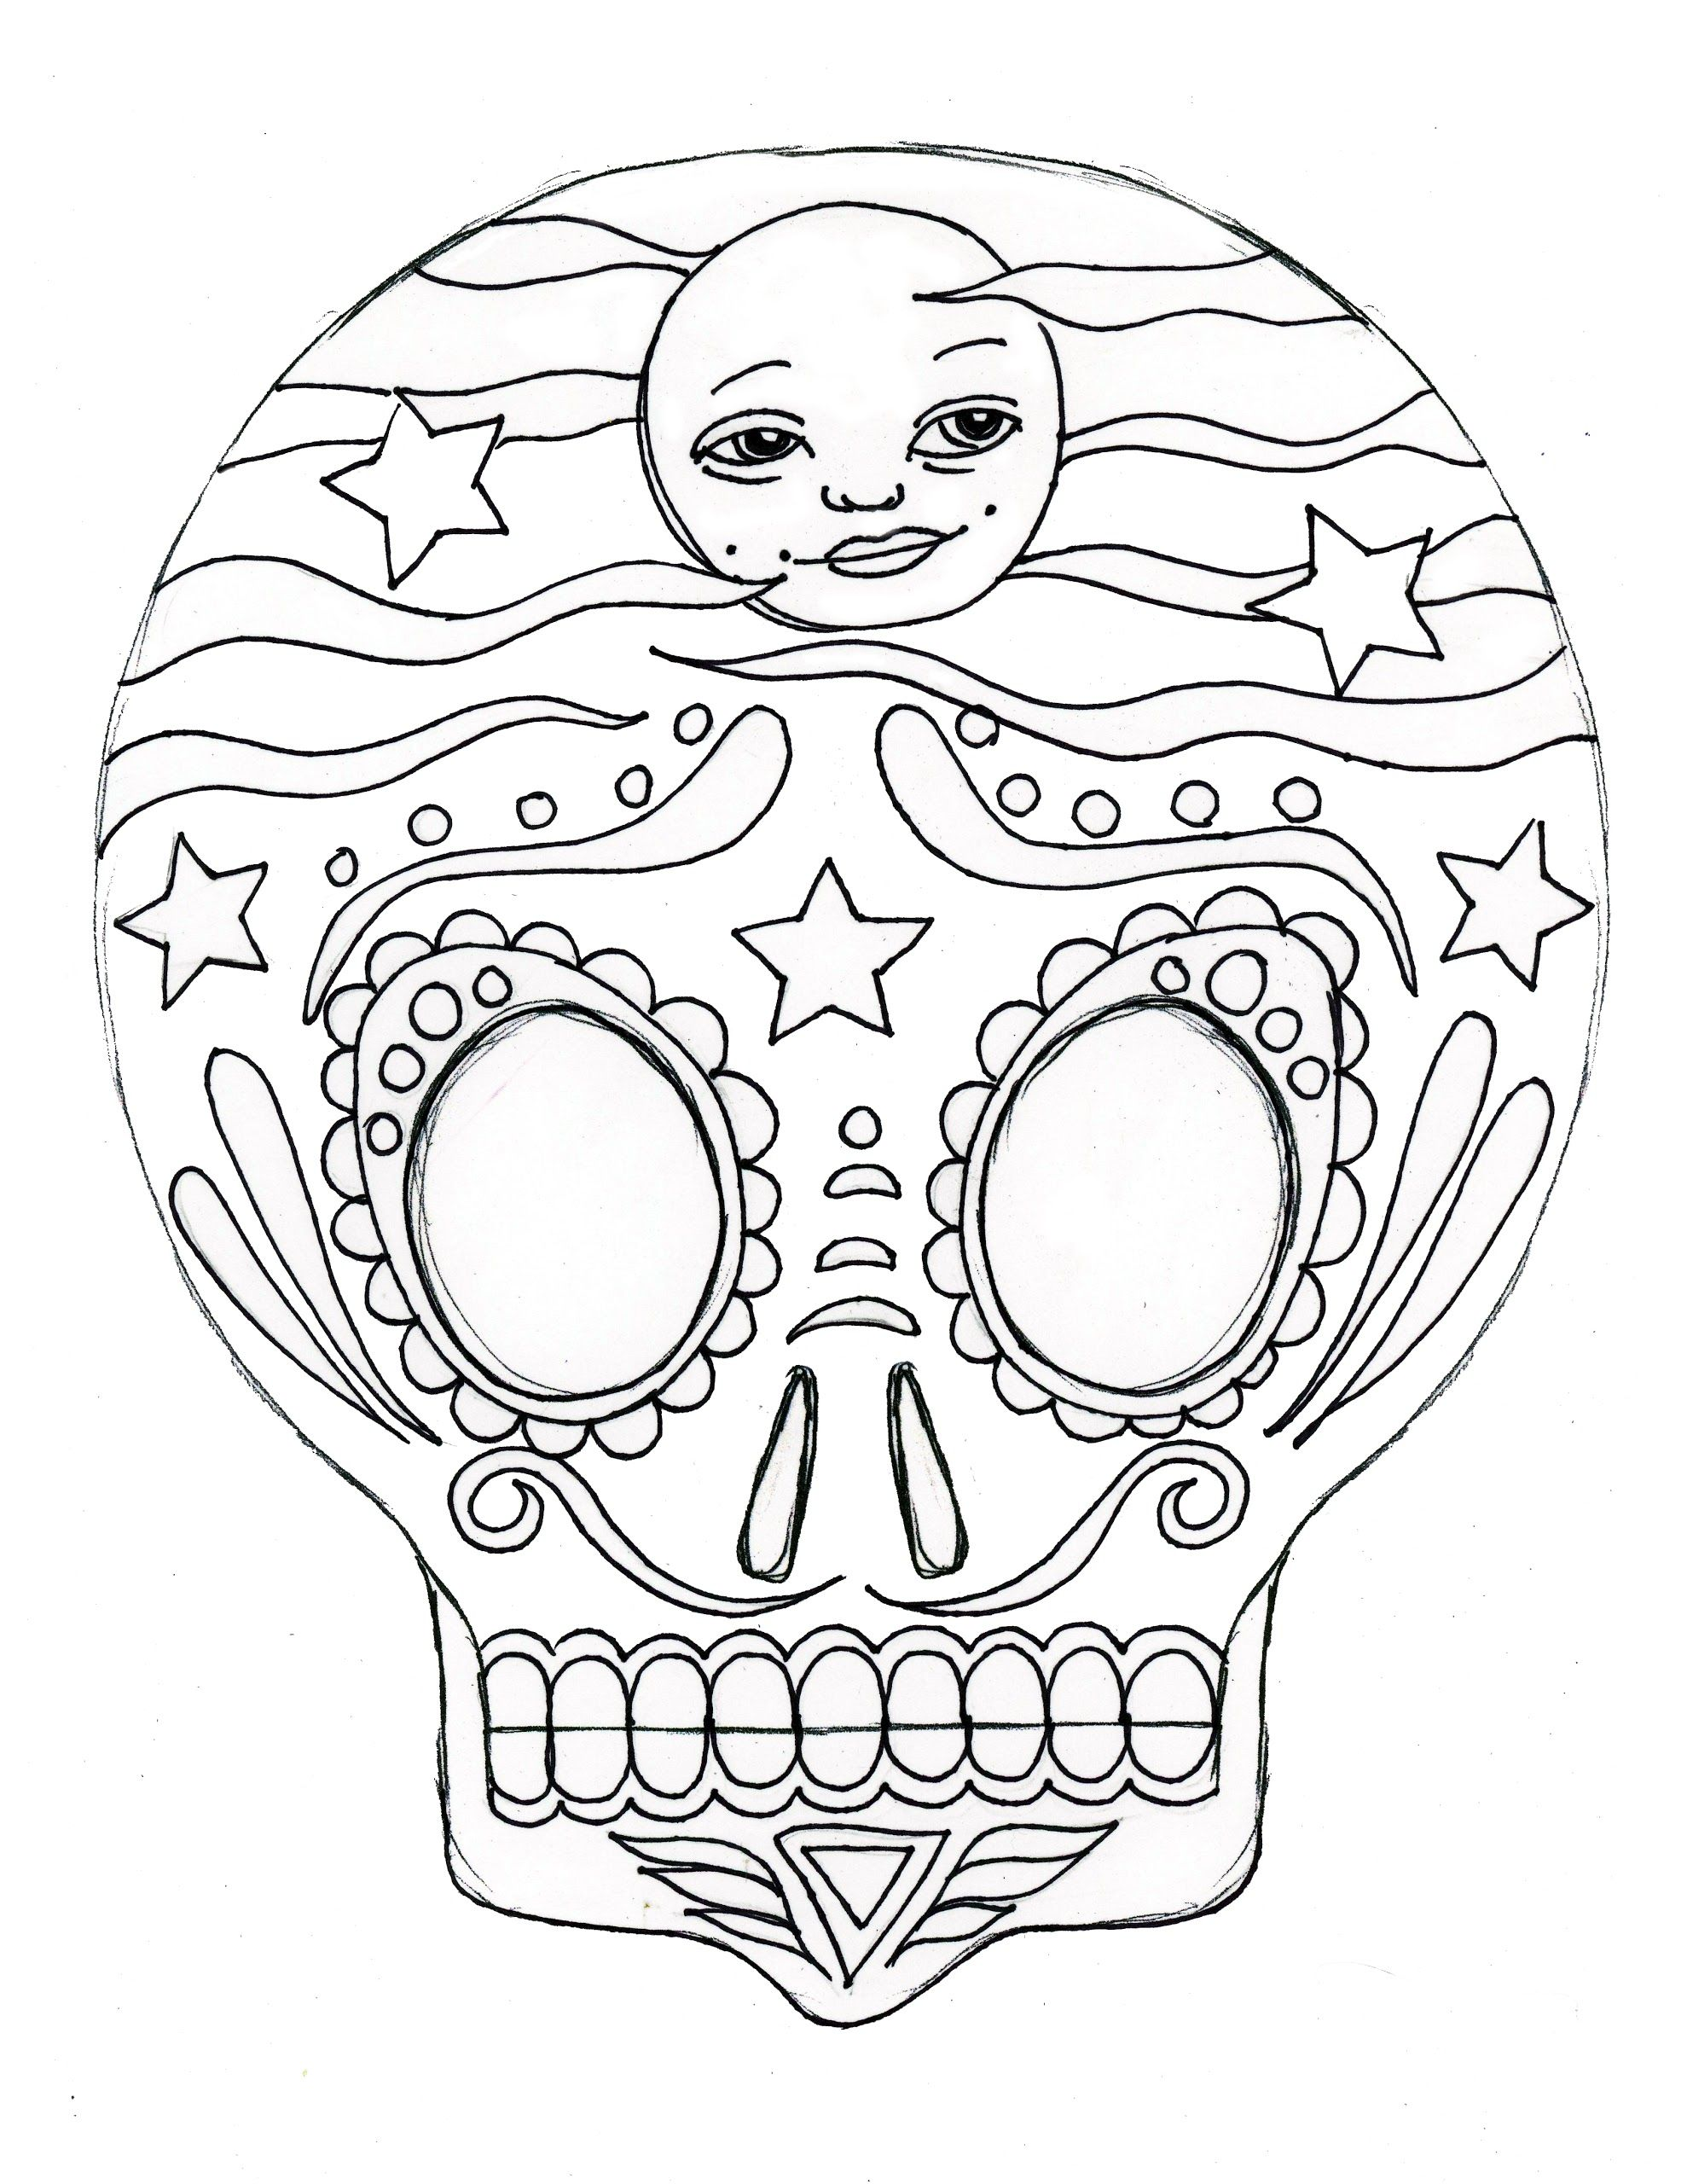 Pin By Lorena Rasgado On Dia De Los Muertos Coloring Pages